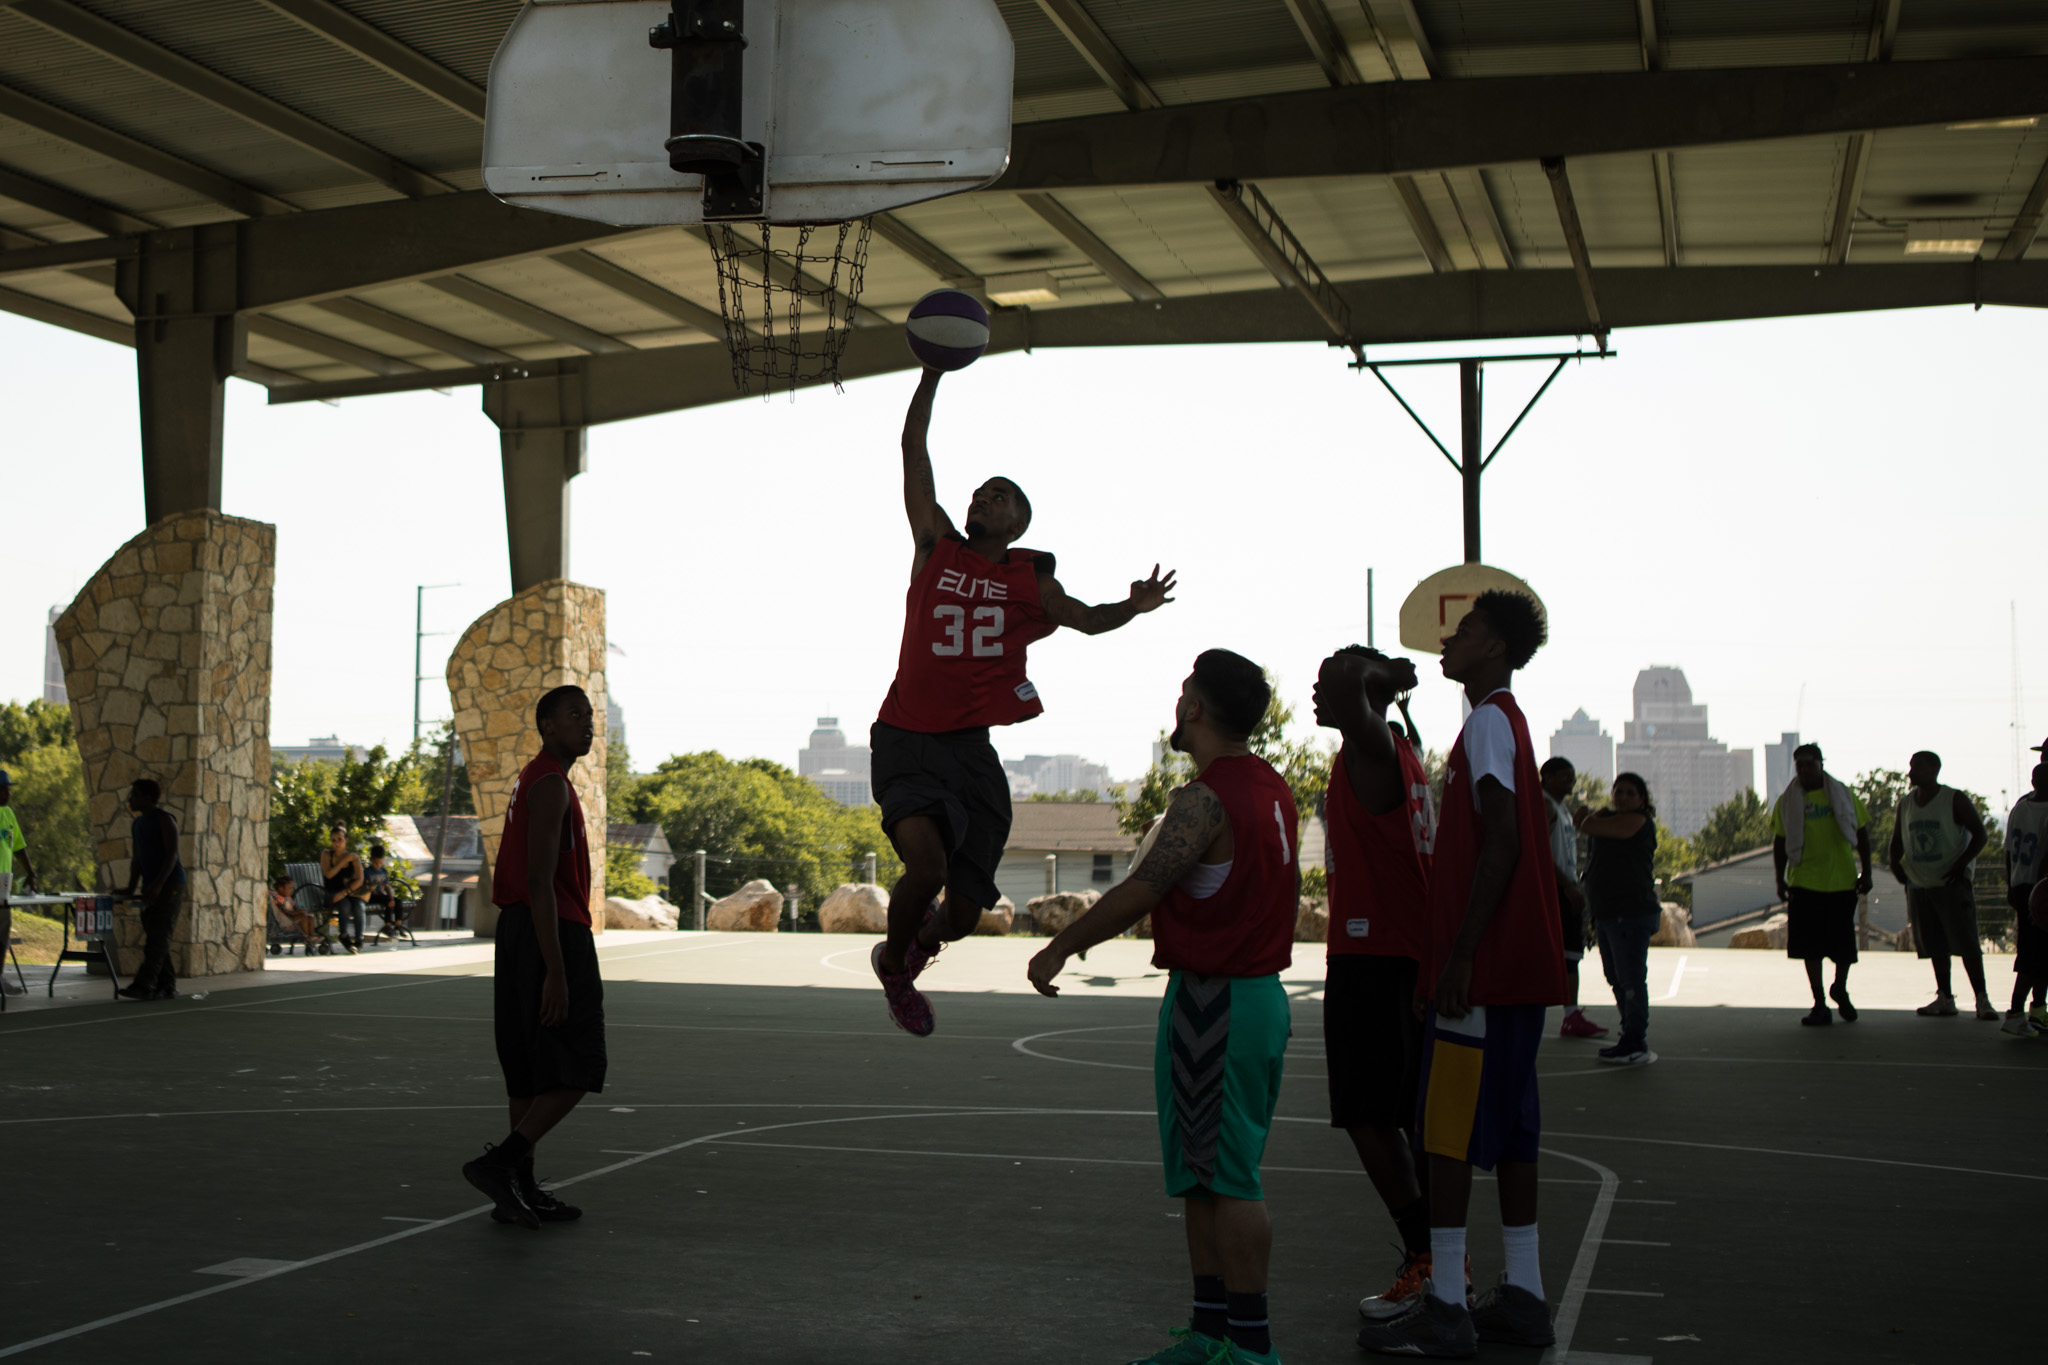 A boy dunks a basketball during the Stand Up SA peace initiative basketball tournament in Lockwood Park.